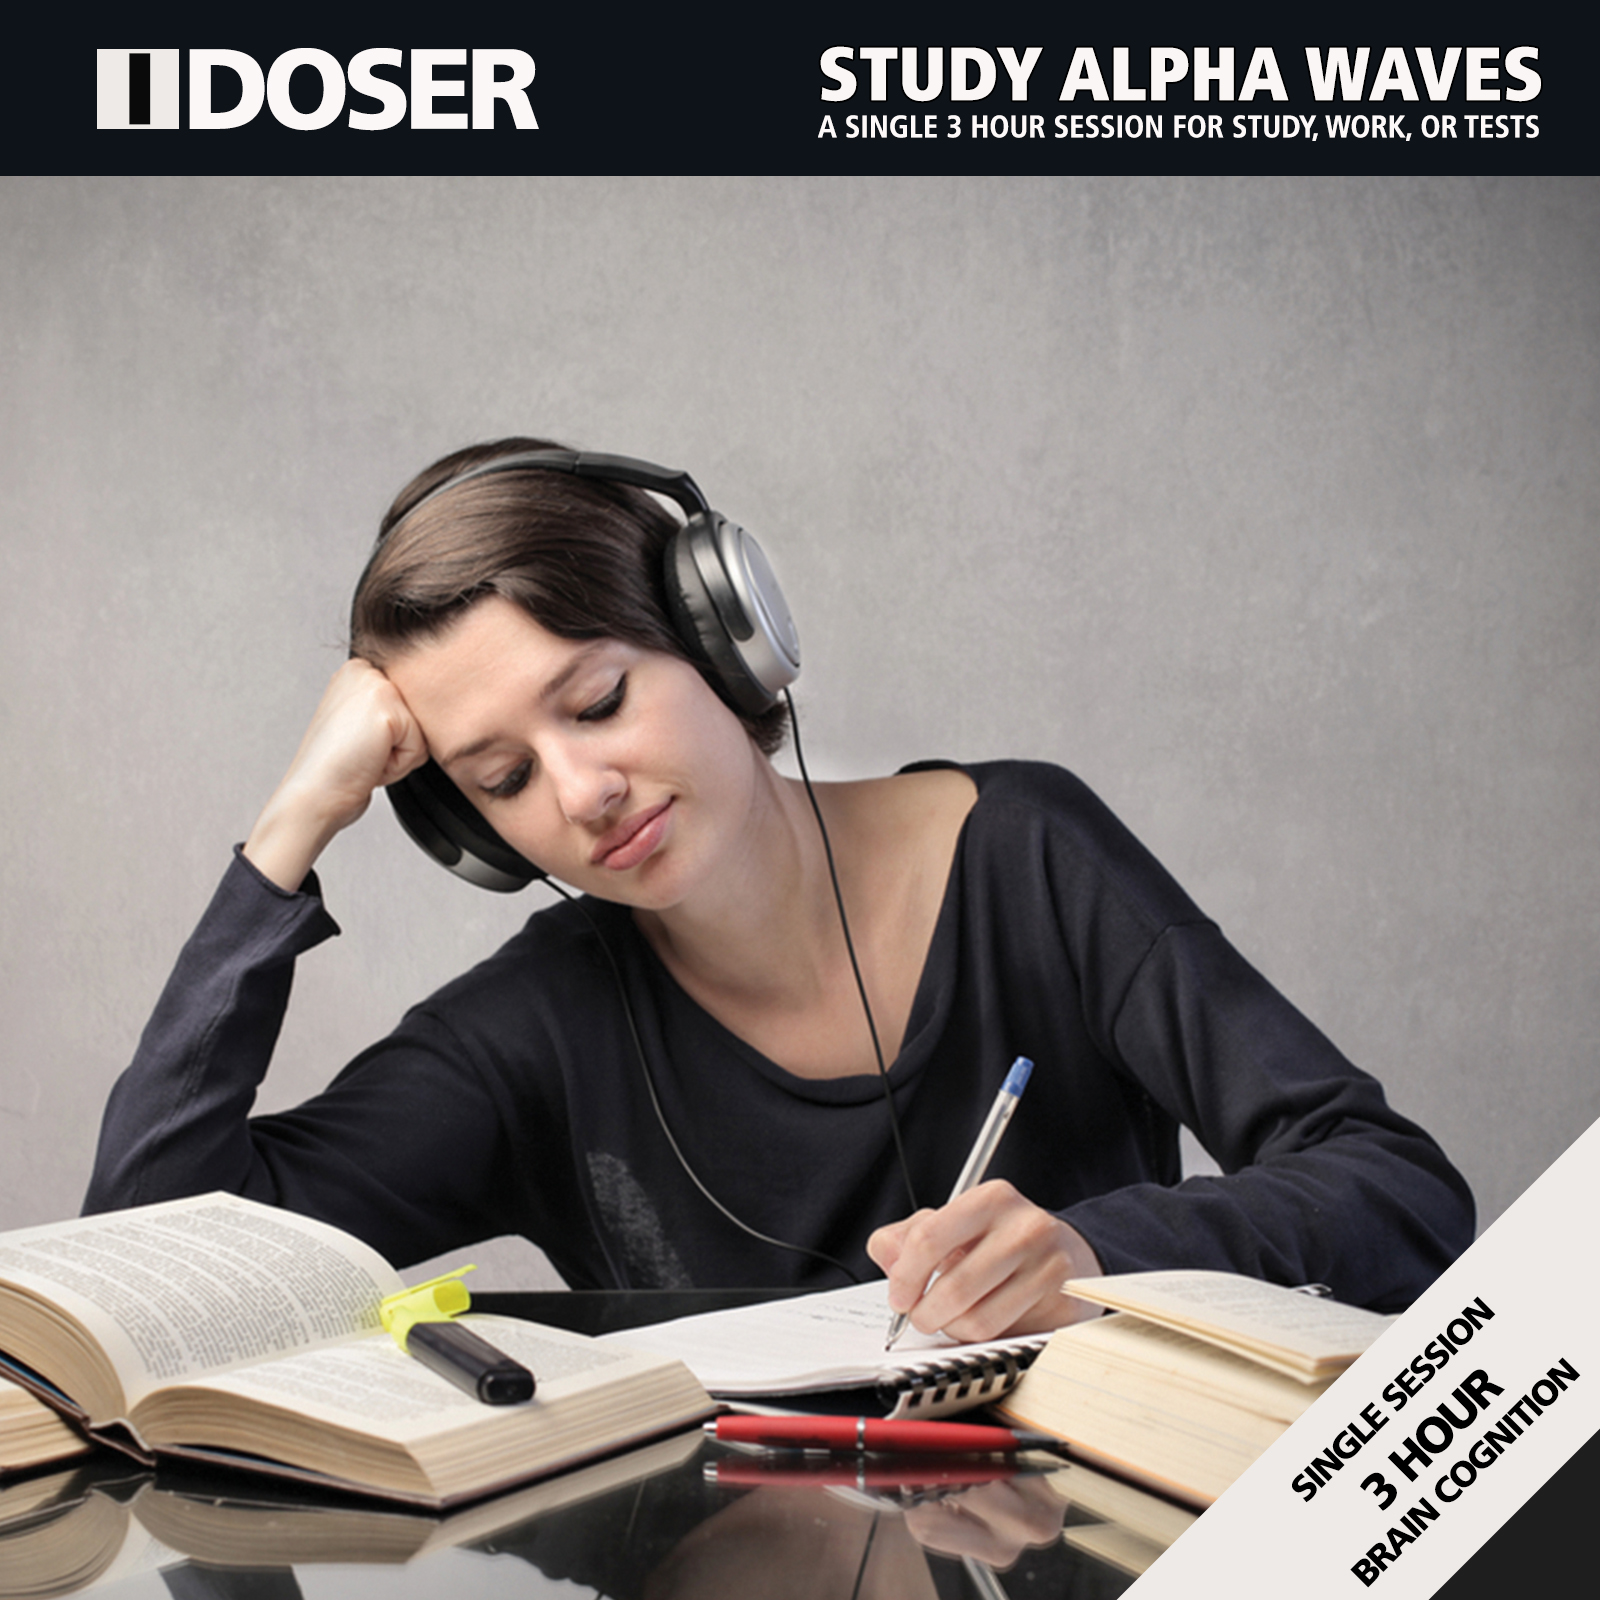 Study Alpha Waves Download Free Mp3 Song - Mp3tunes